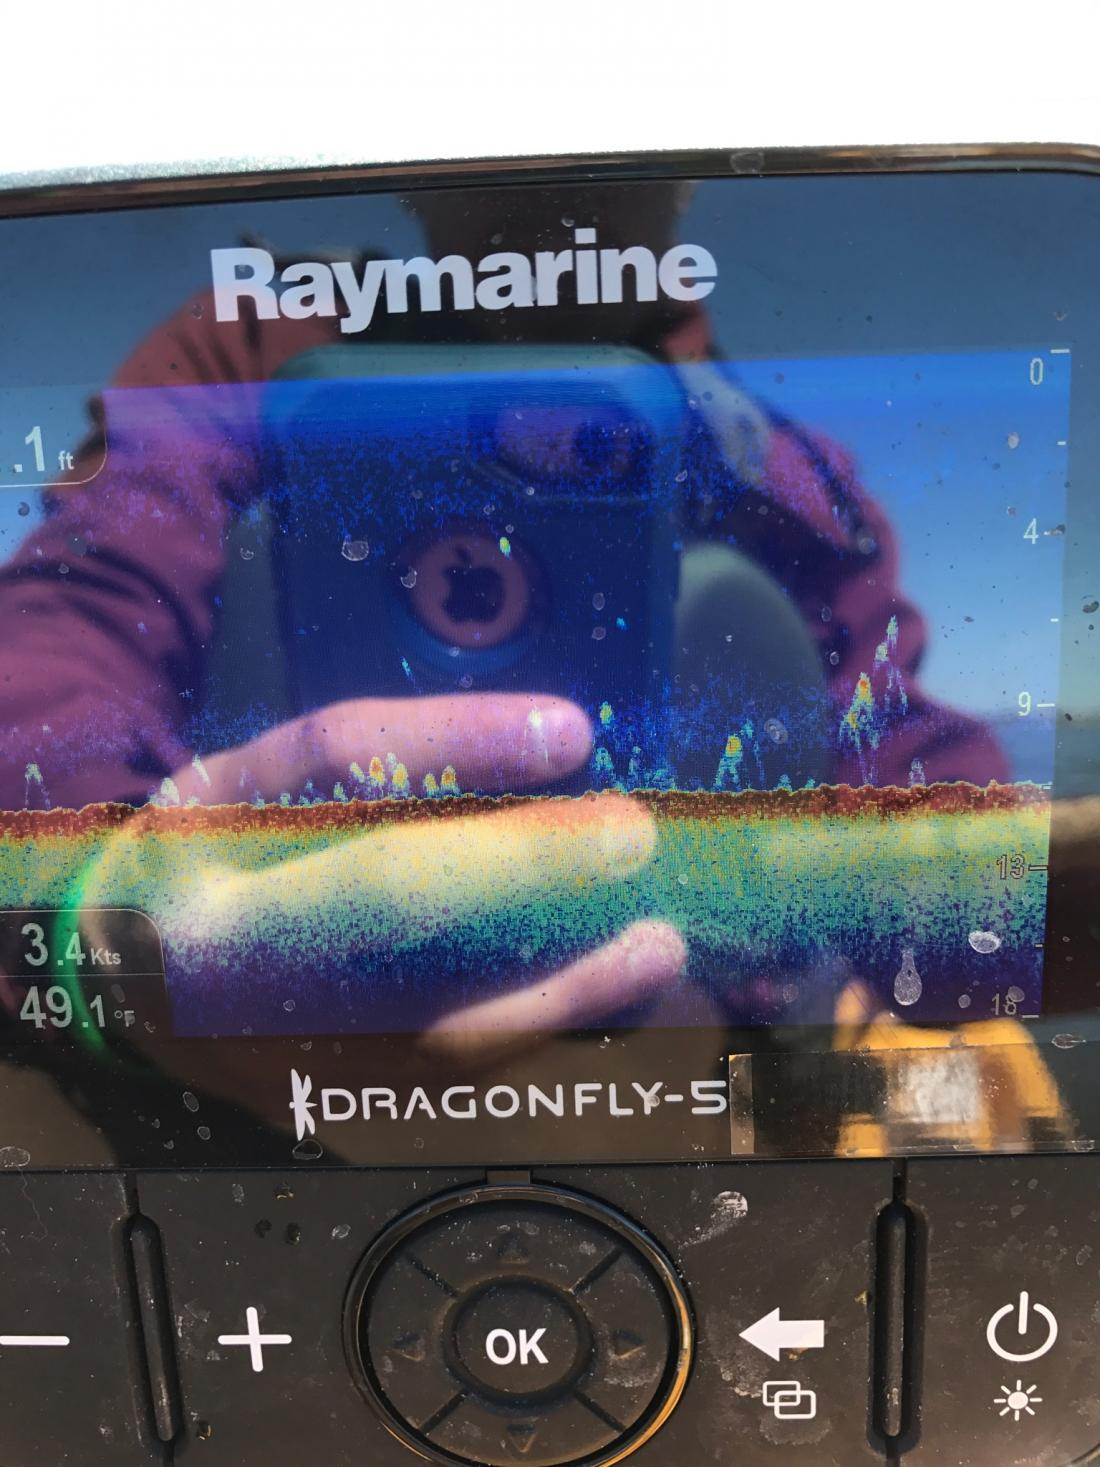 Raymarine Dragonfly help    - Kayaking and Kayak Fishing